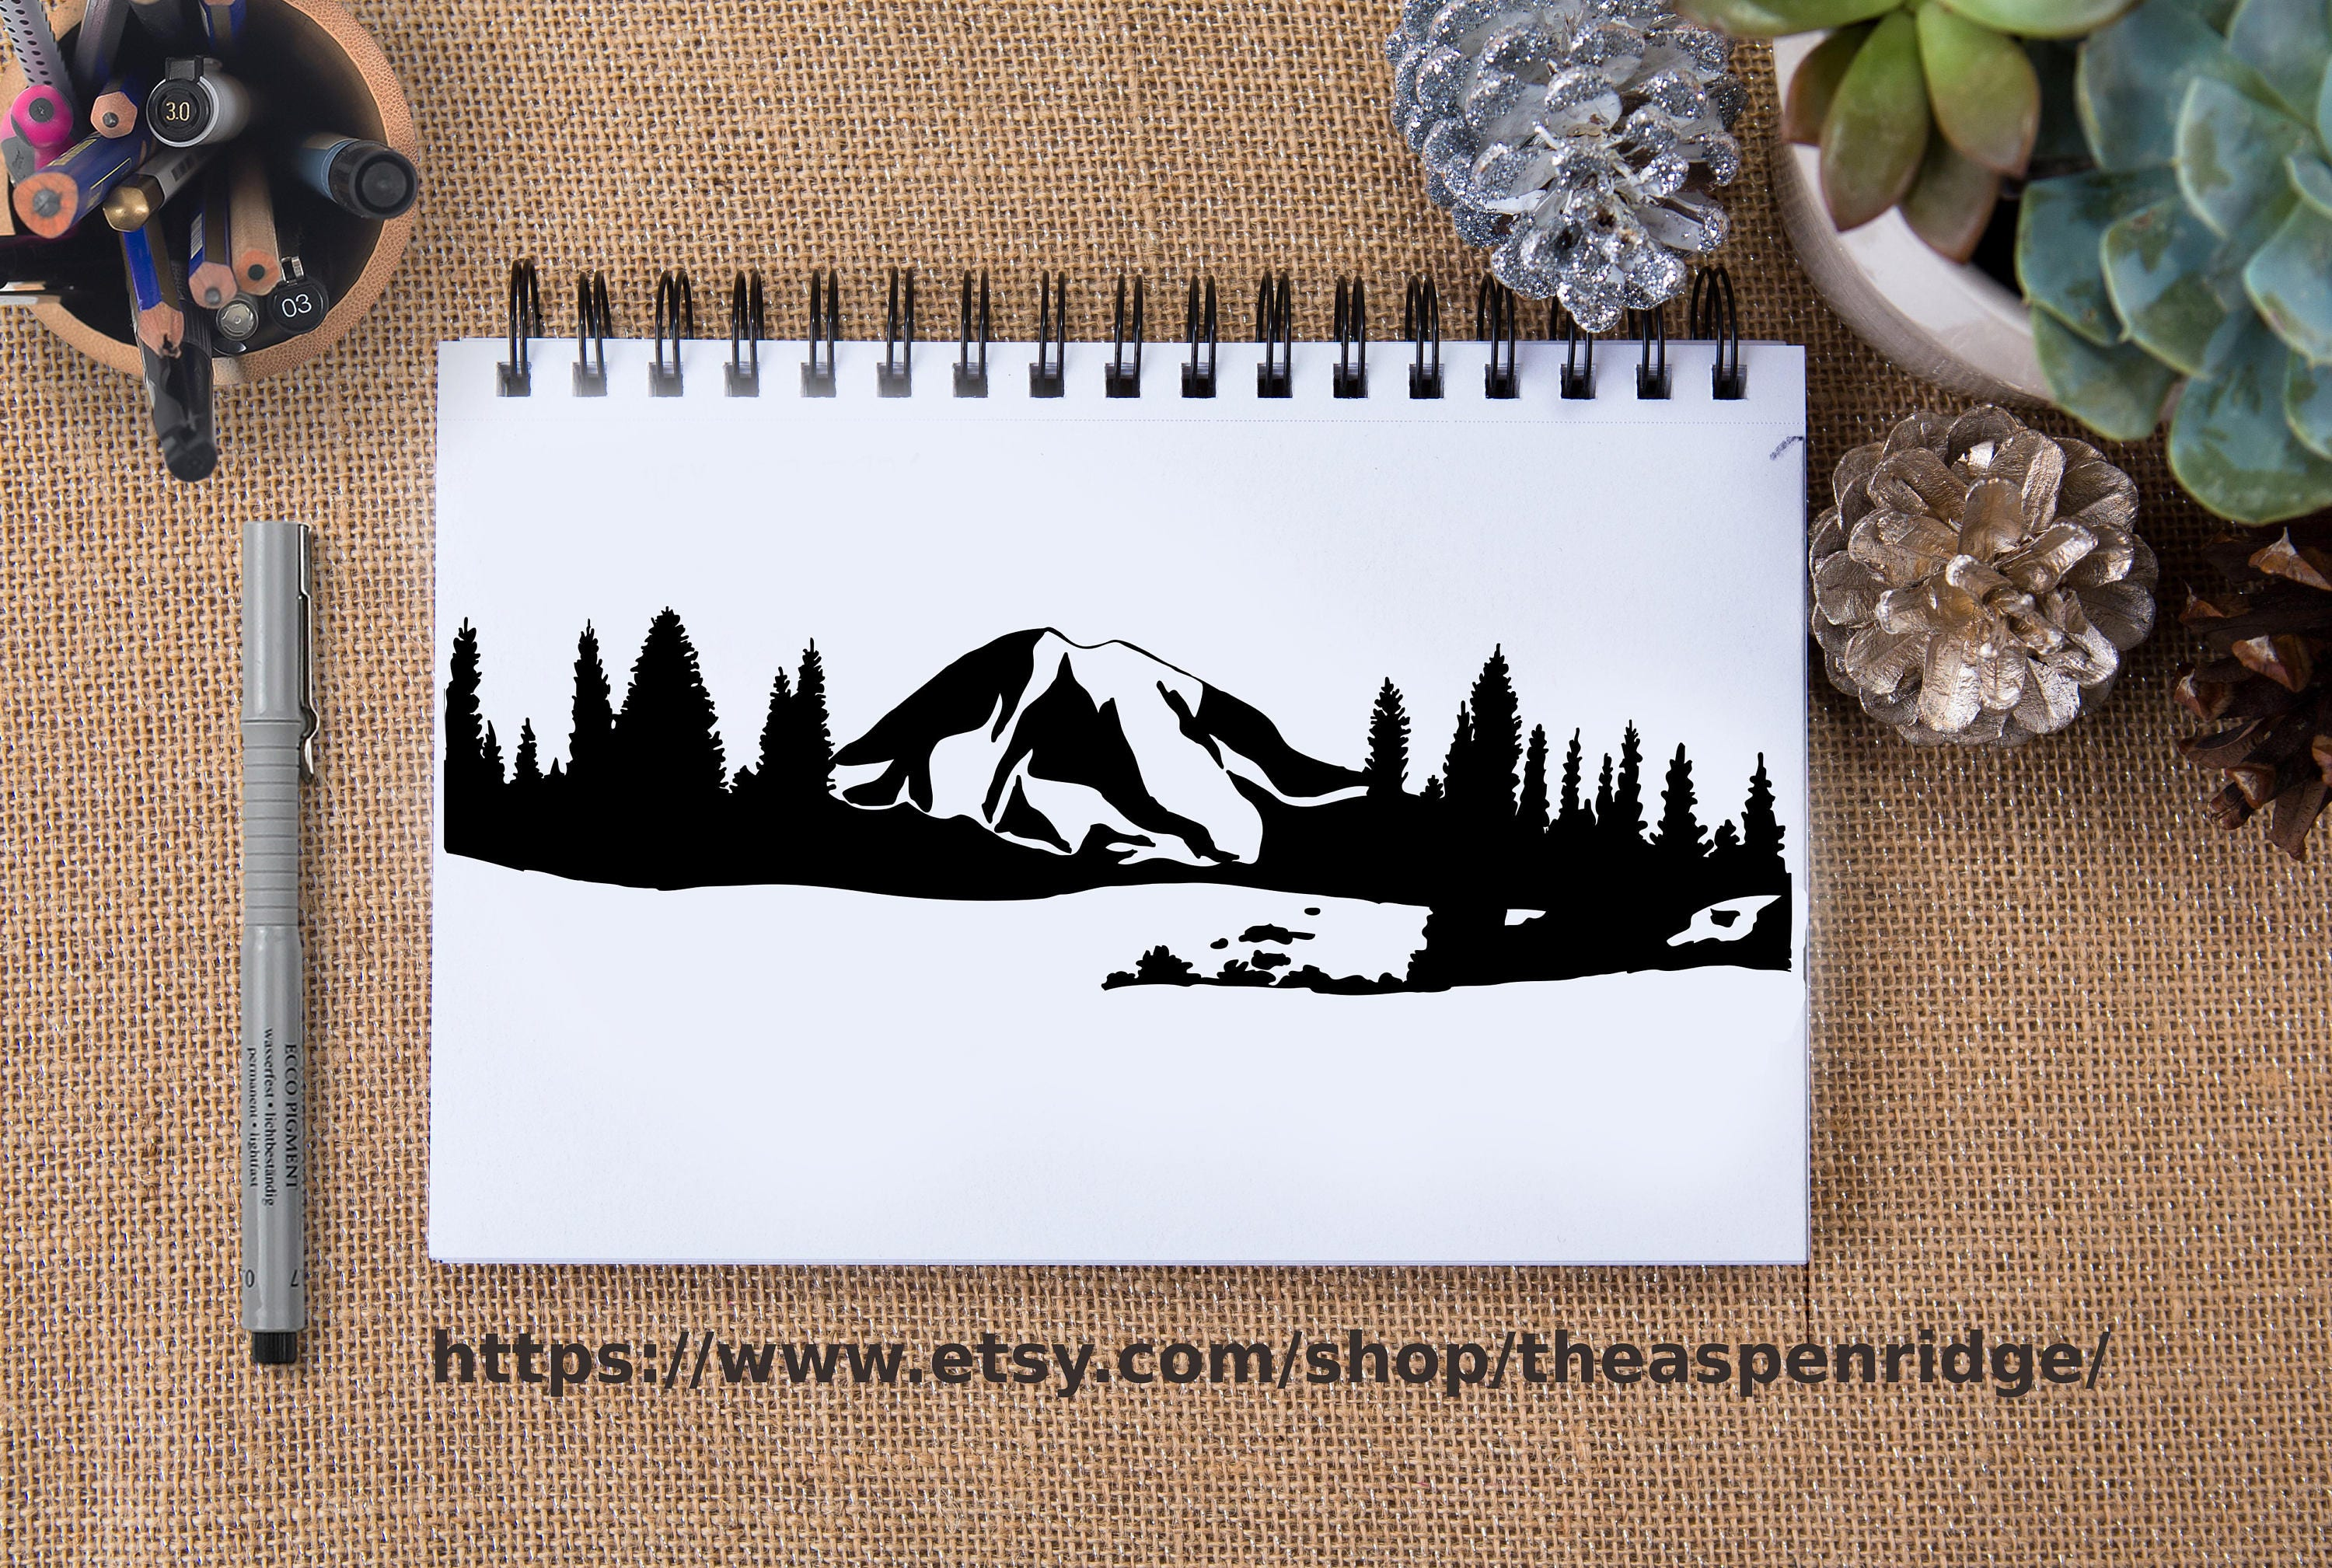 It's just a picture of Astounding Mt Rainier Drawing